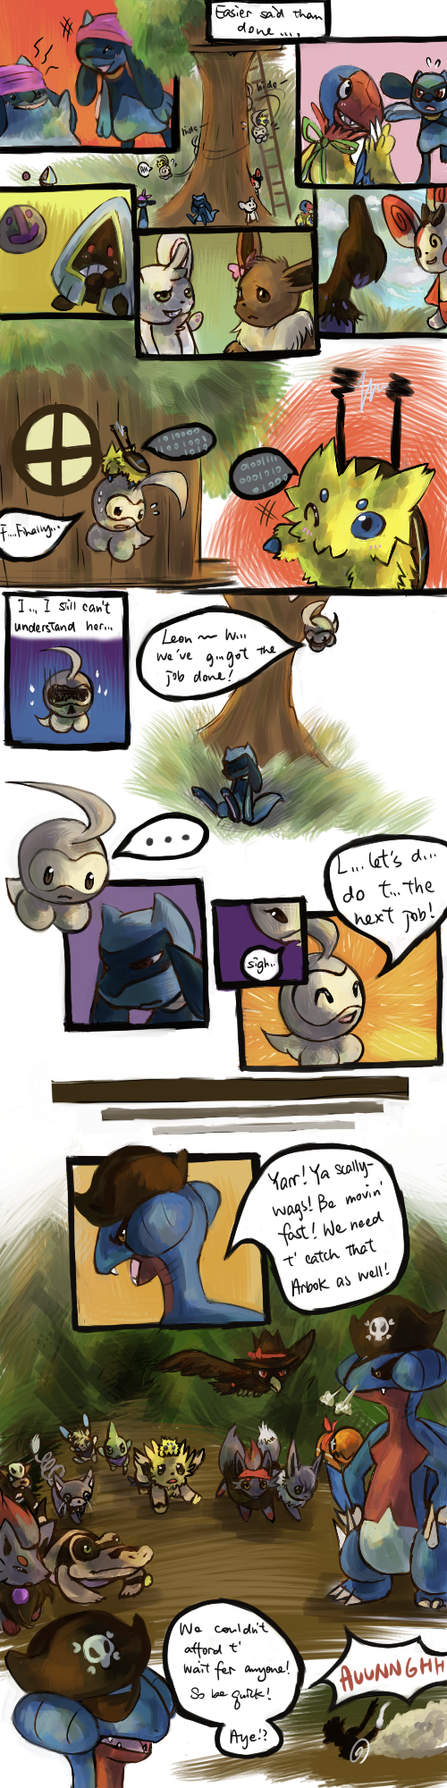 The Masked Mission 2 part 8 by Haychel